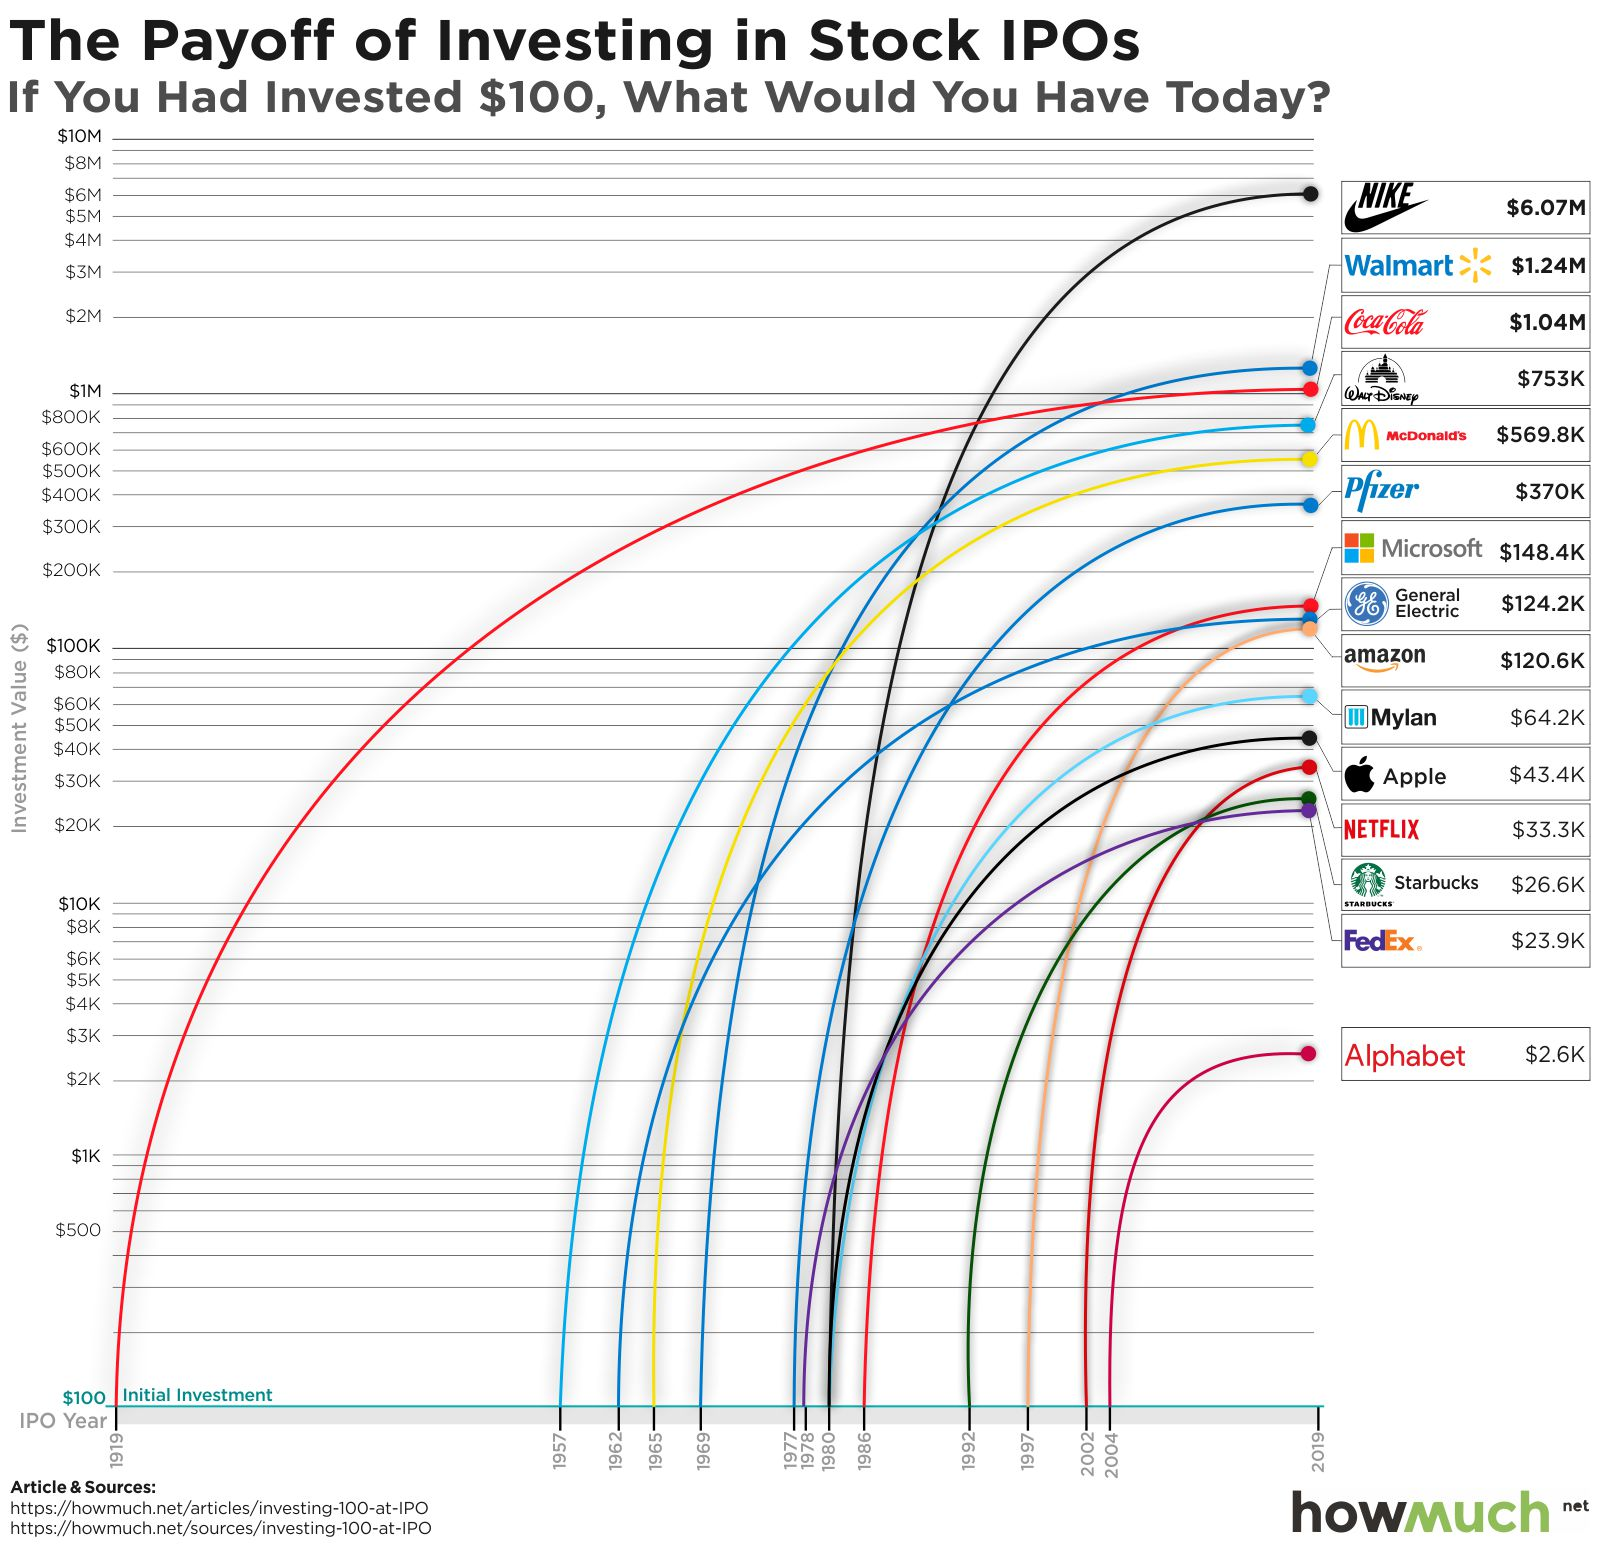 Invest Companies Visualize What Investing 100 Early In Stocks Would Be Worth Today